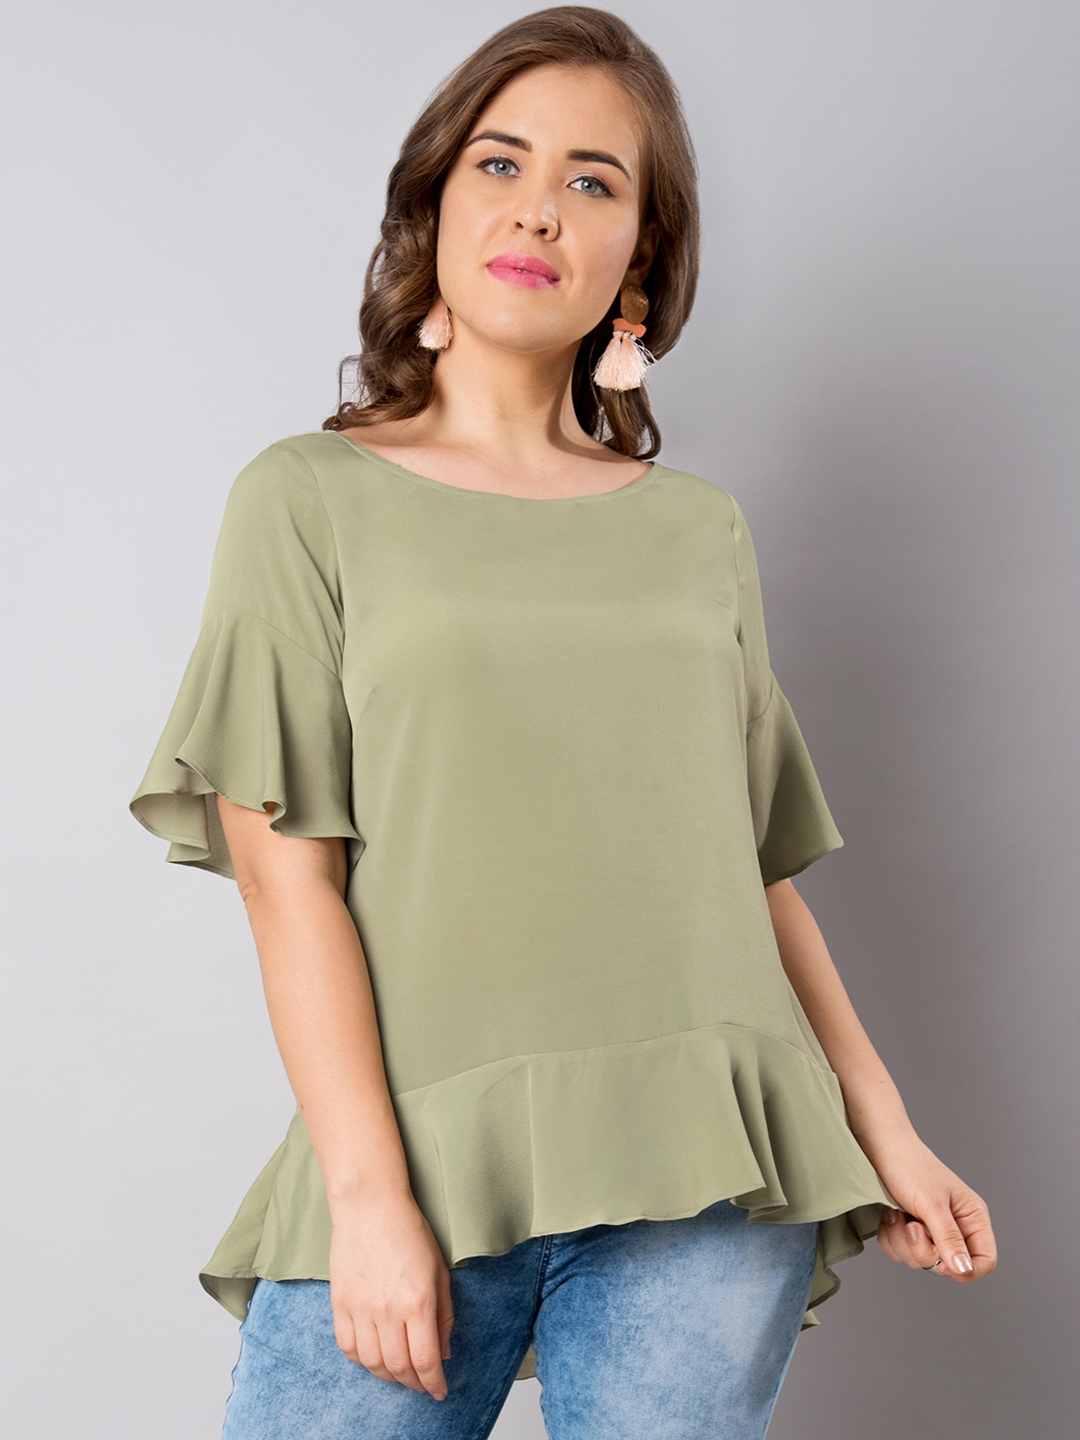 b4757c0bb9d60a Buy FabAlley Curve Women Olive Green Solid Peplum Top - Tops for ...